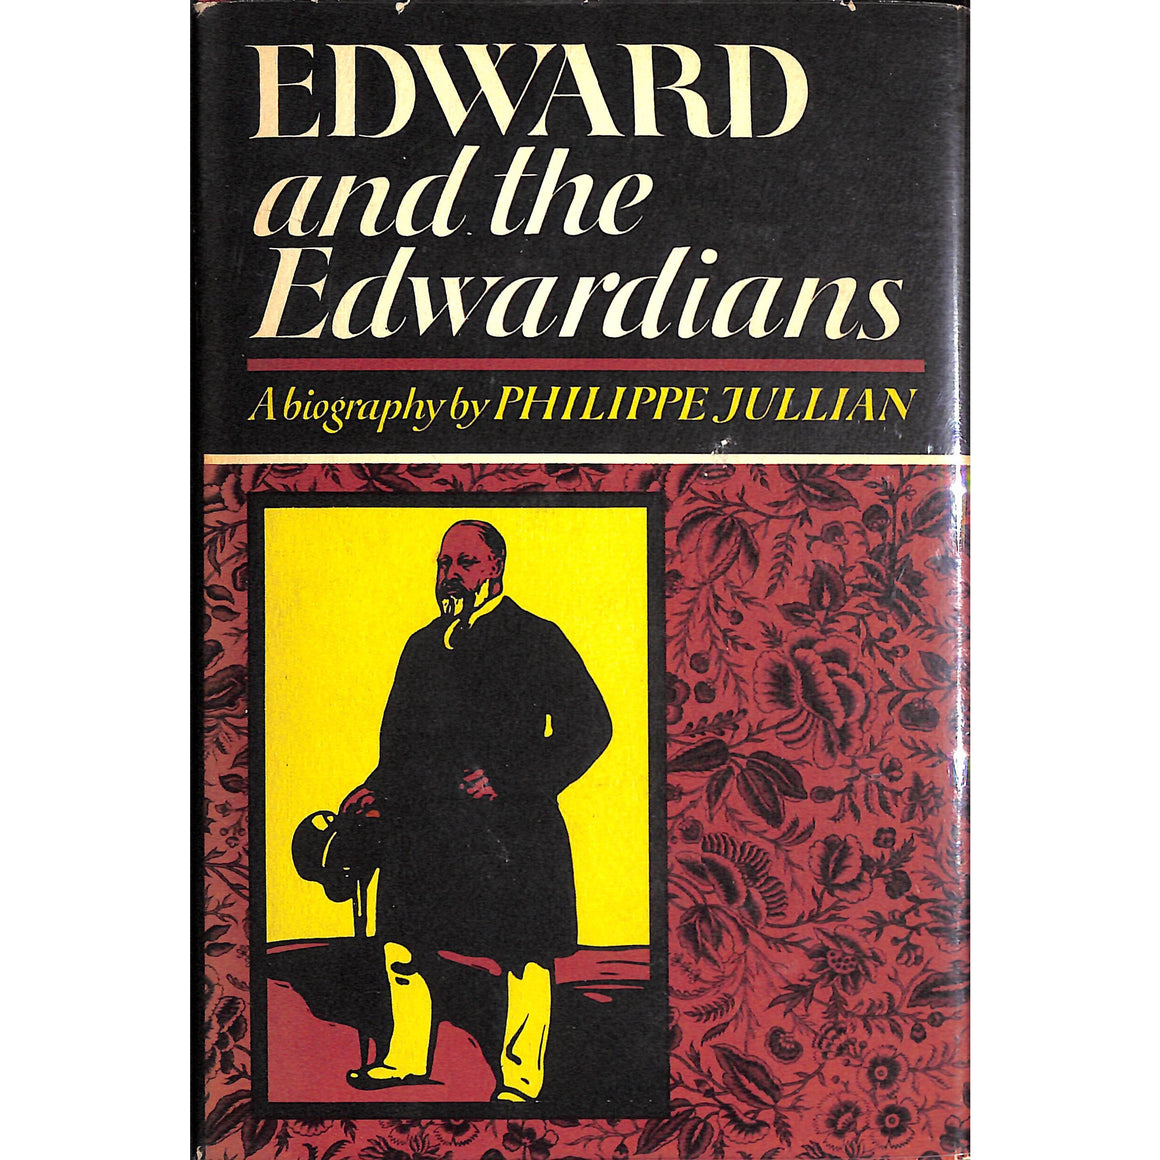 Edward and the Edwardians